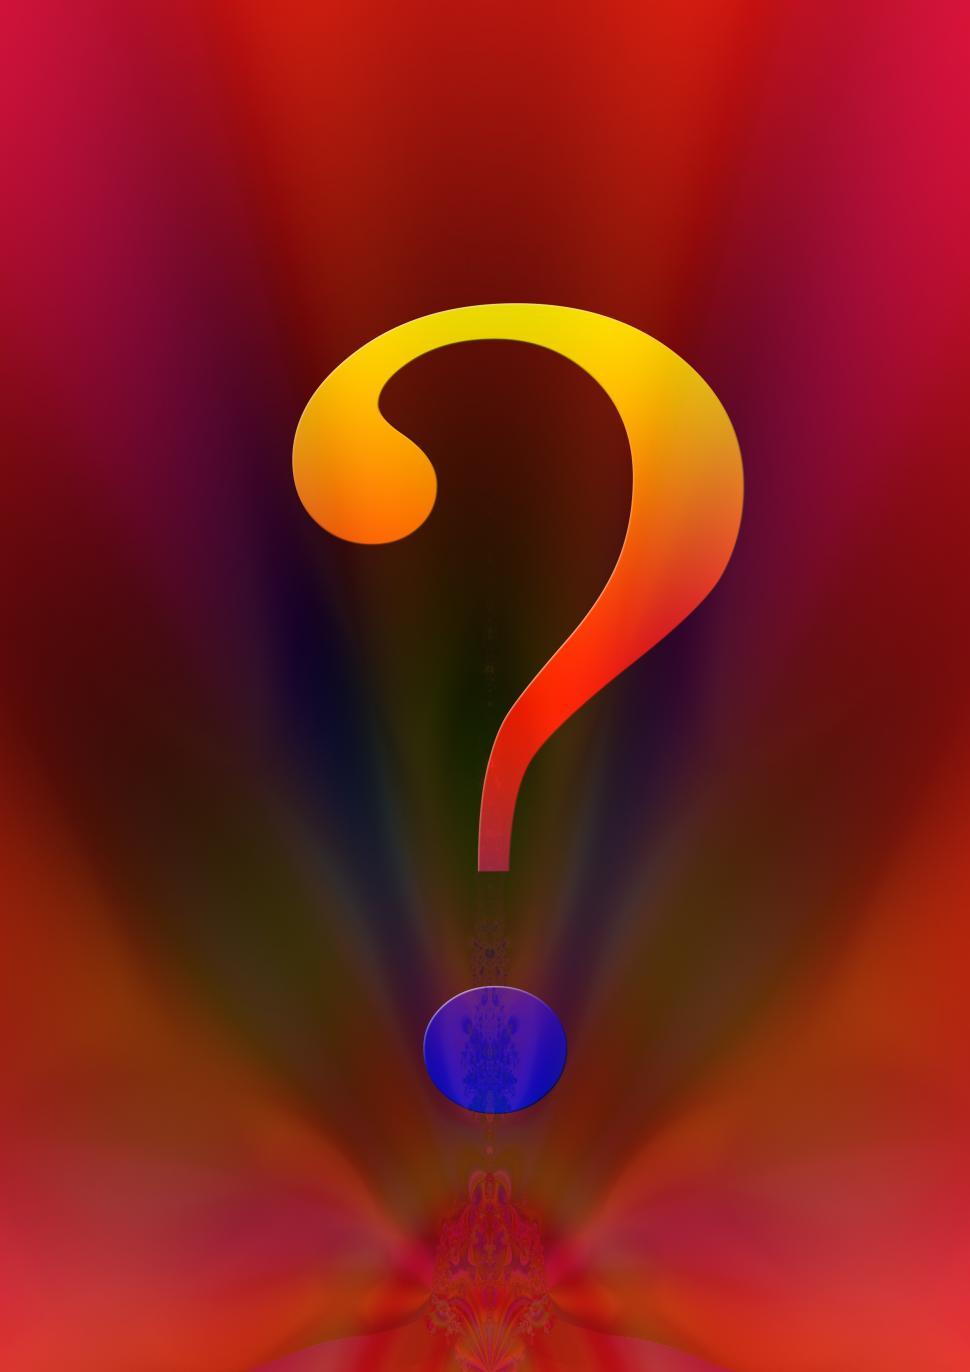 Download Free Stock HD Photo of Question mark  Online